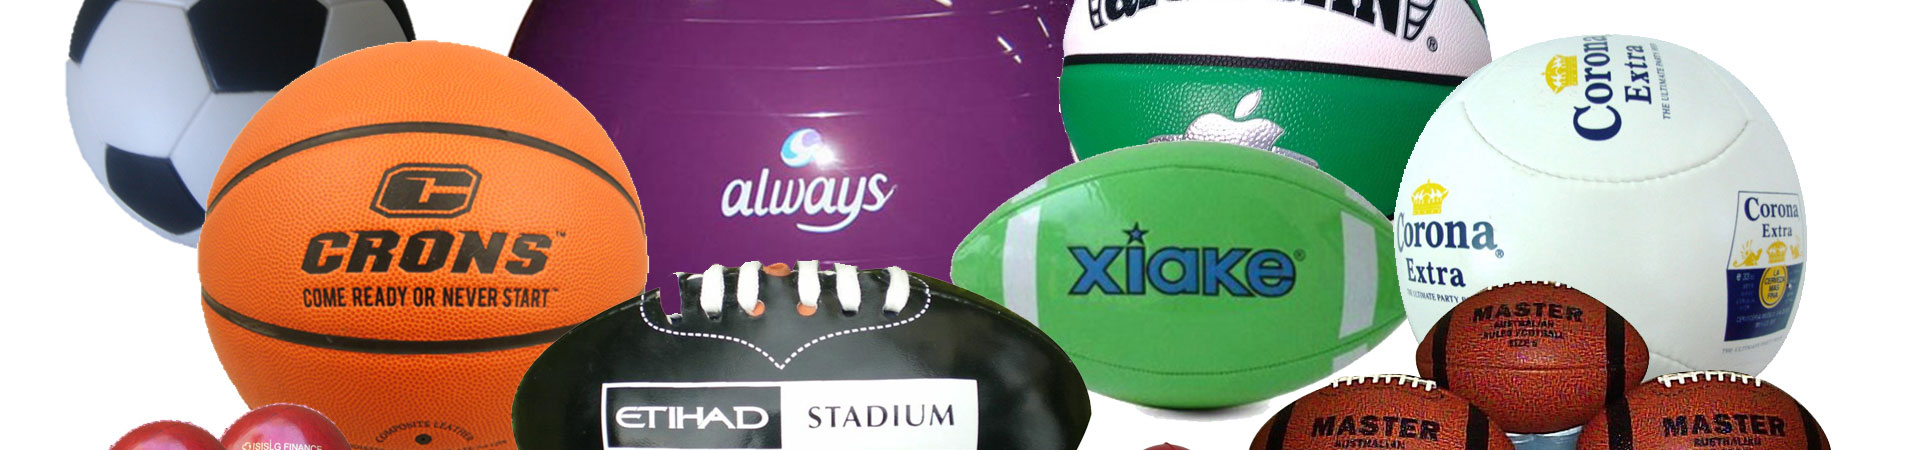 sports balls printed with logo